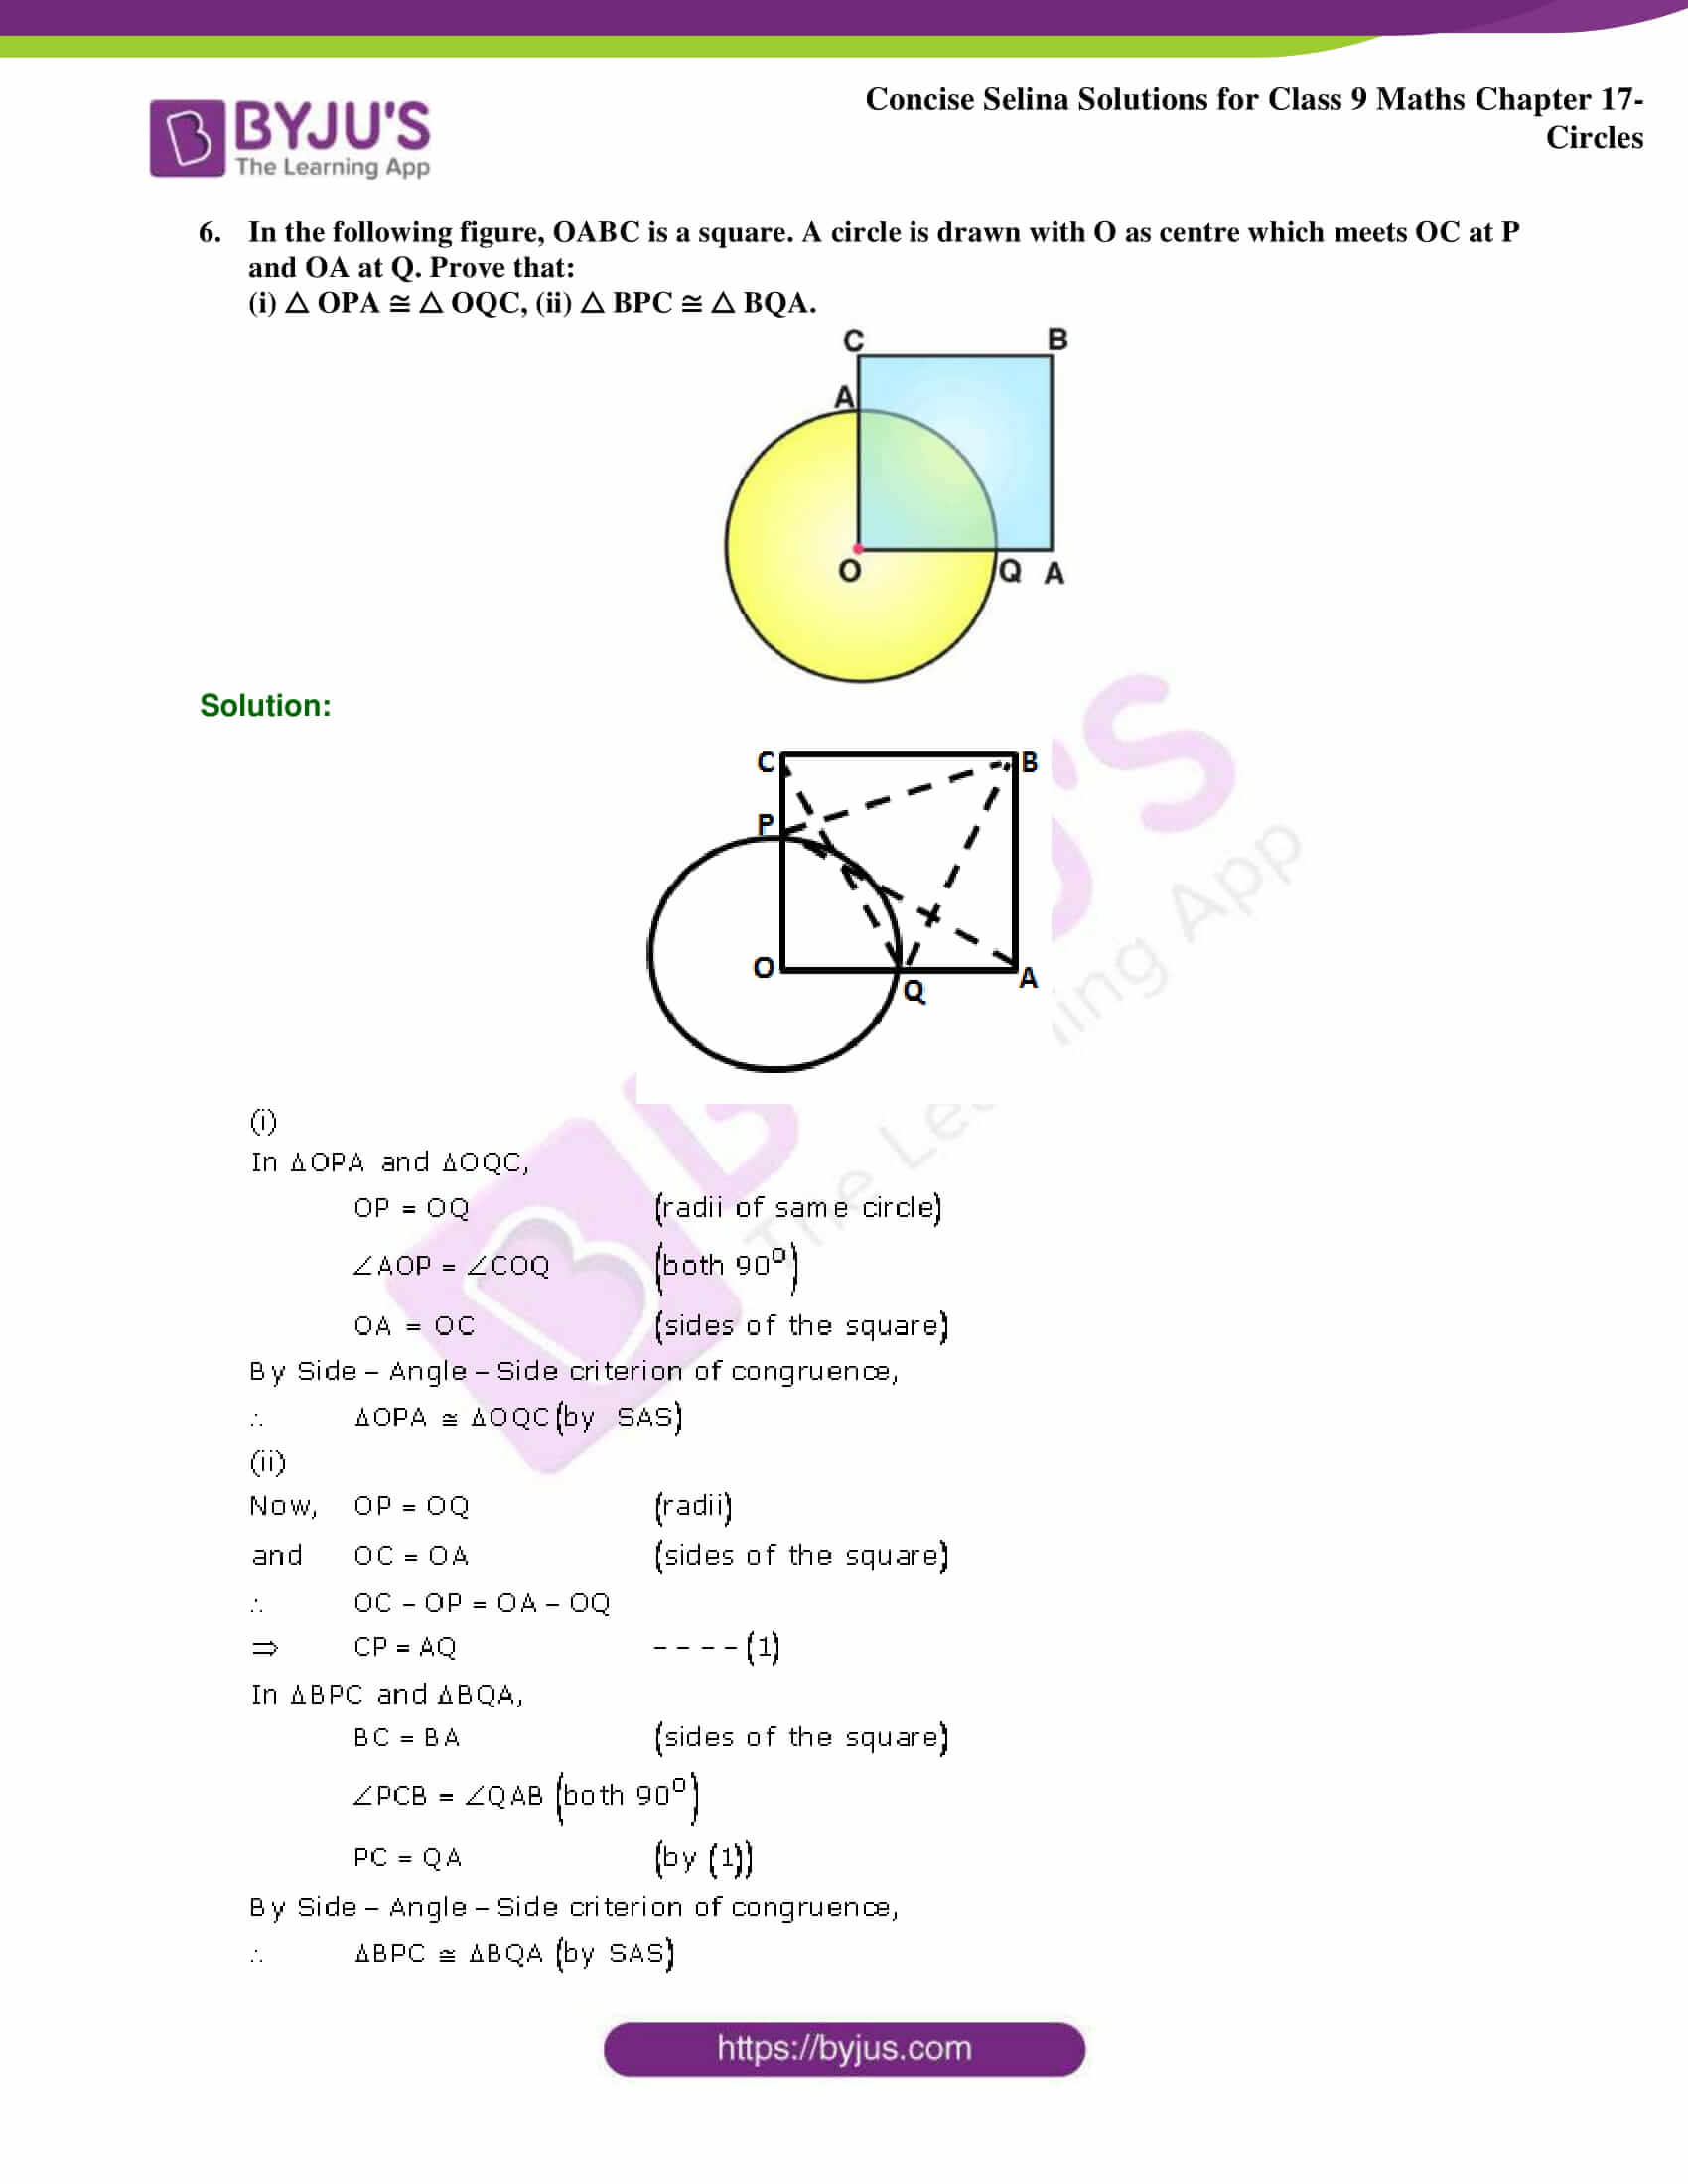 Concise Selina Solutions Class 9 Maths Chapter 17 Circles part 14